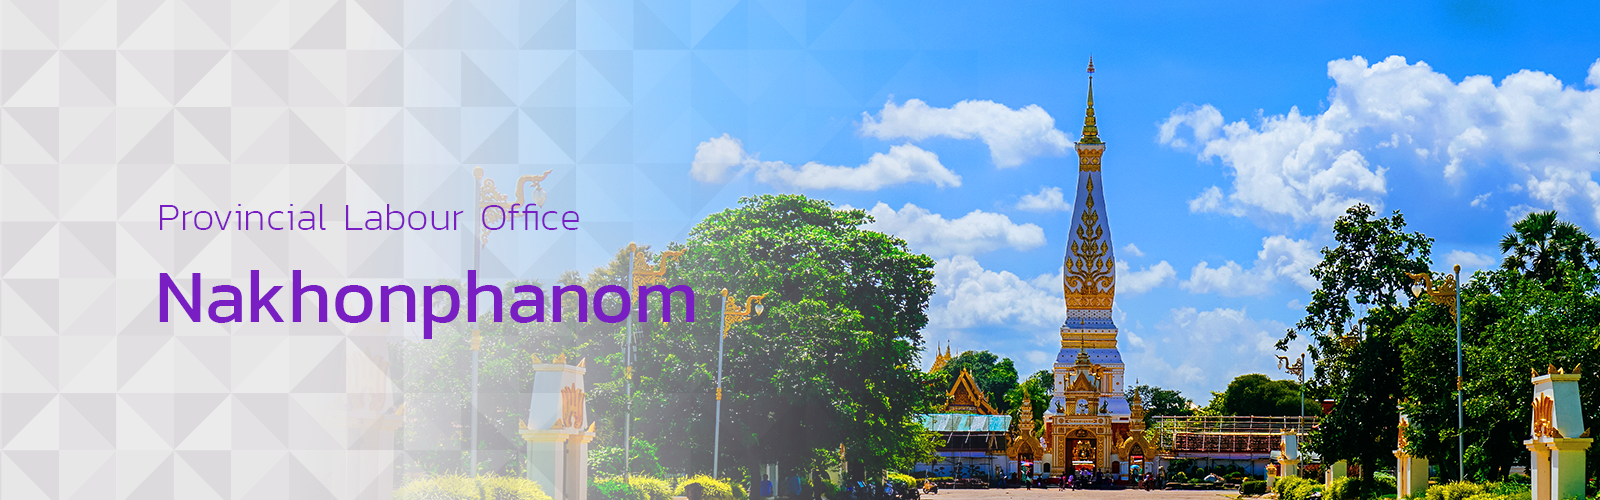 Provincial Labour Office Nakhonphanom